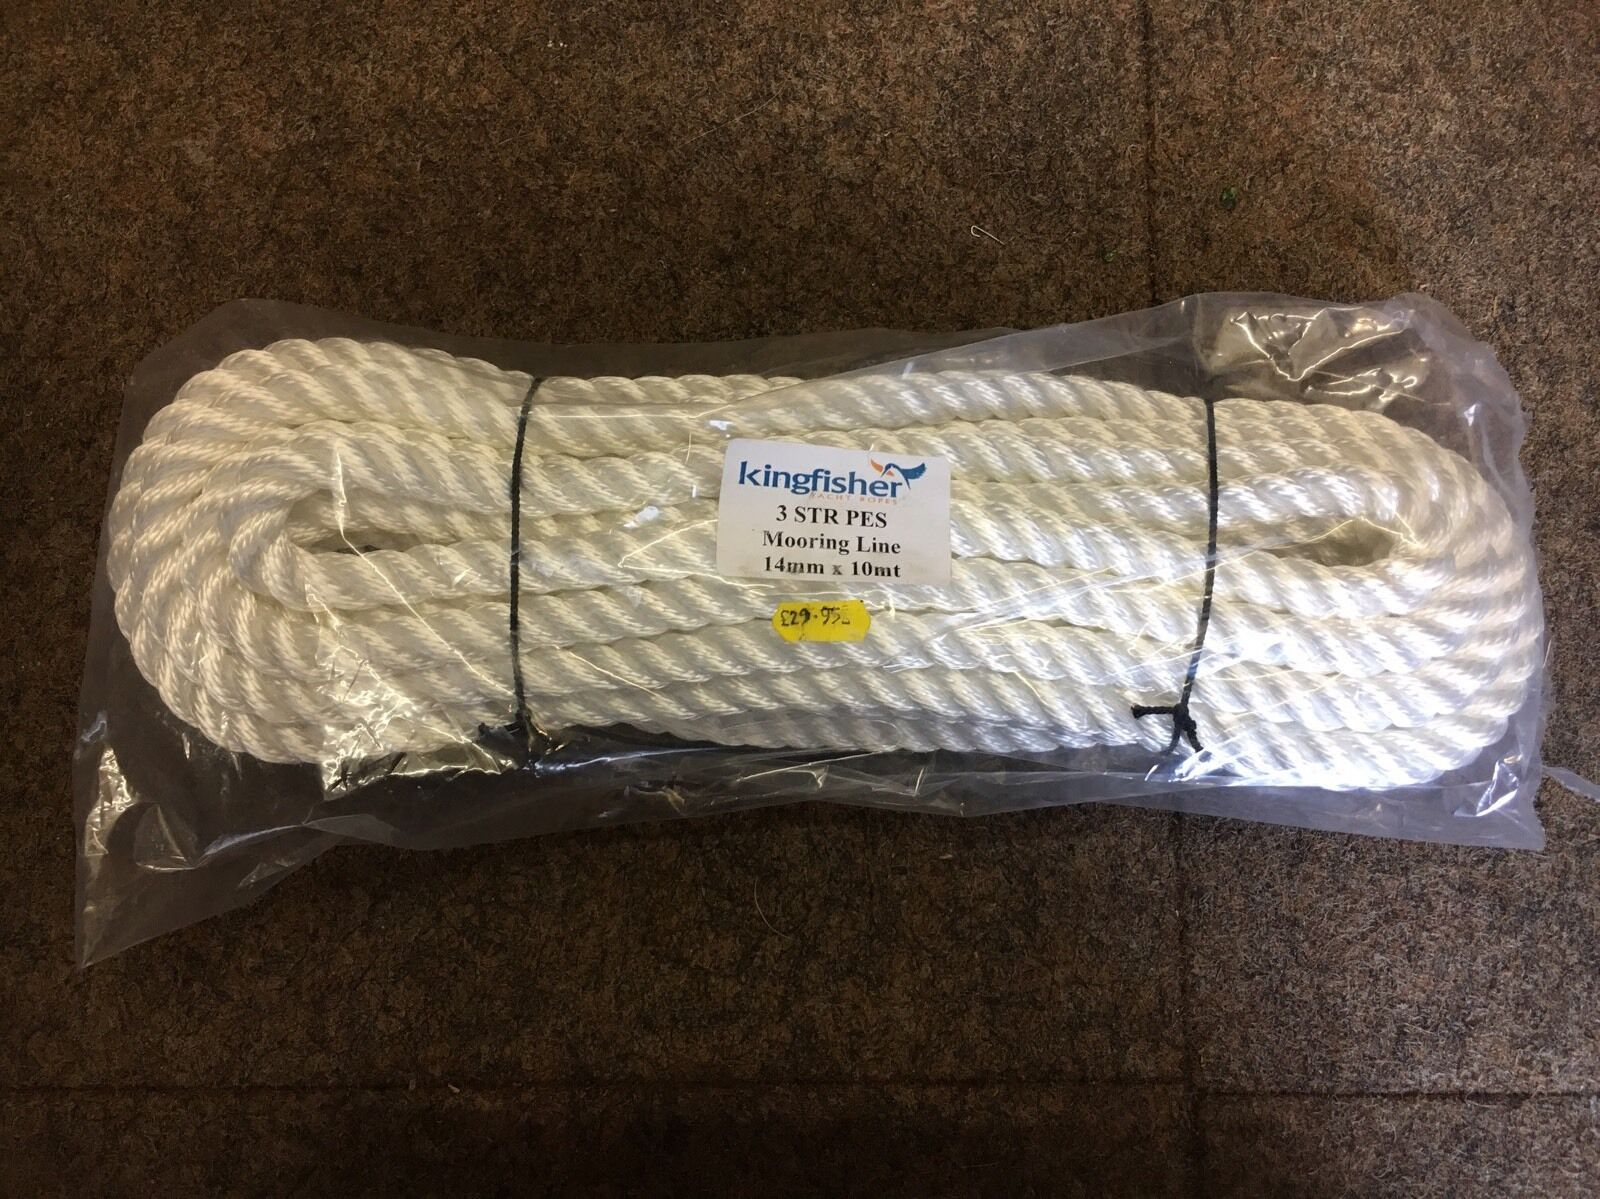 Kingfisher Mooring Line 3 Strand Polyester Yacht Boat Rope Spliced Eye 14mm 10m